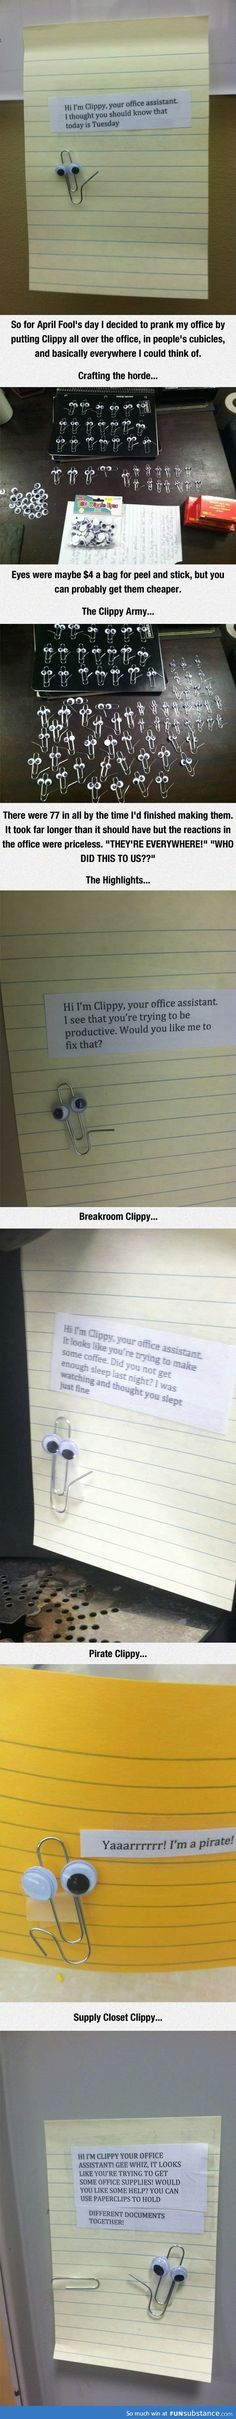 Clippy April Fools Prank